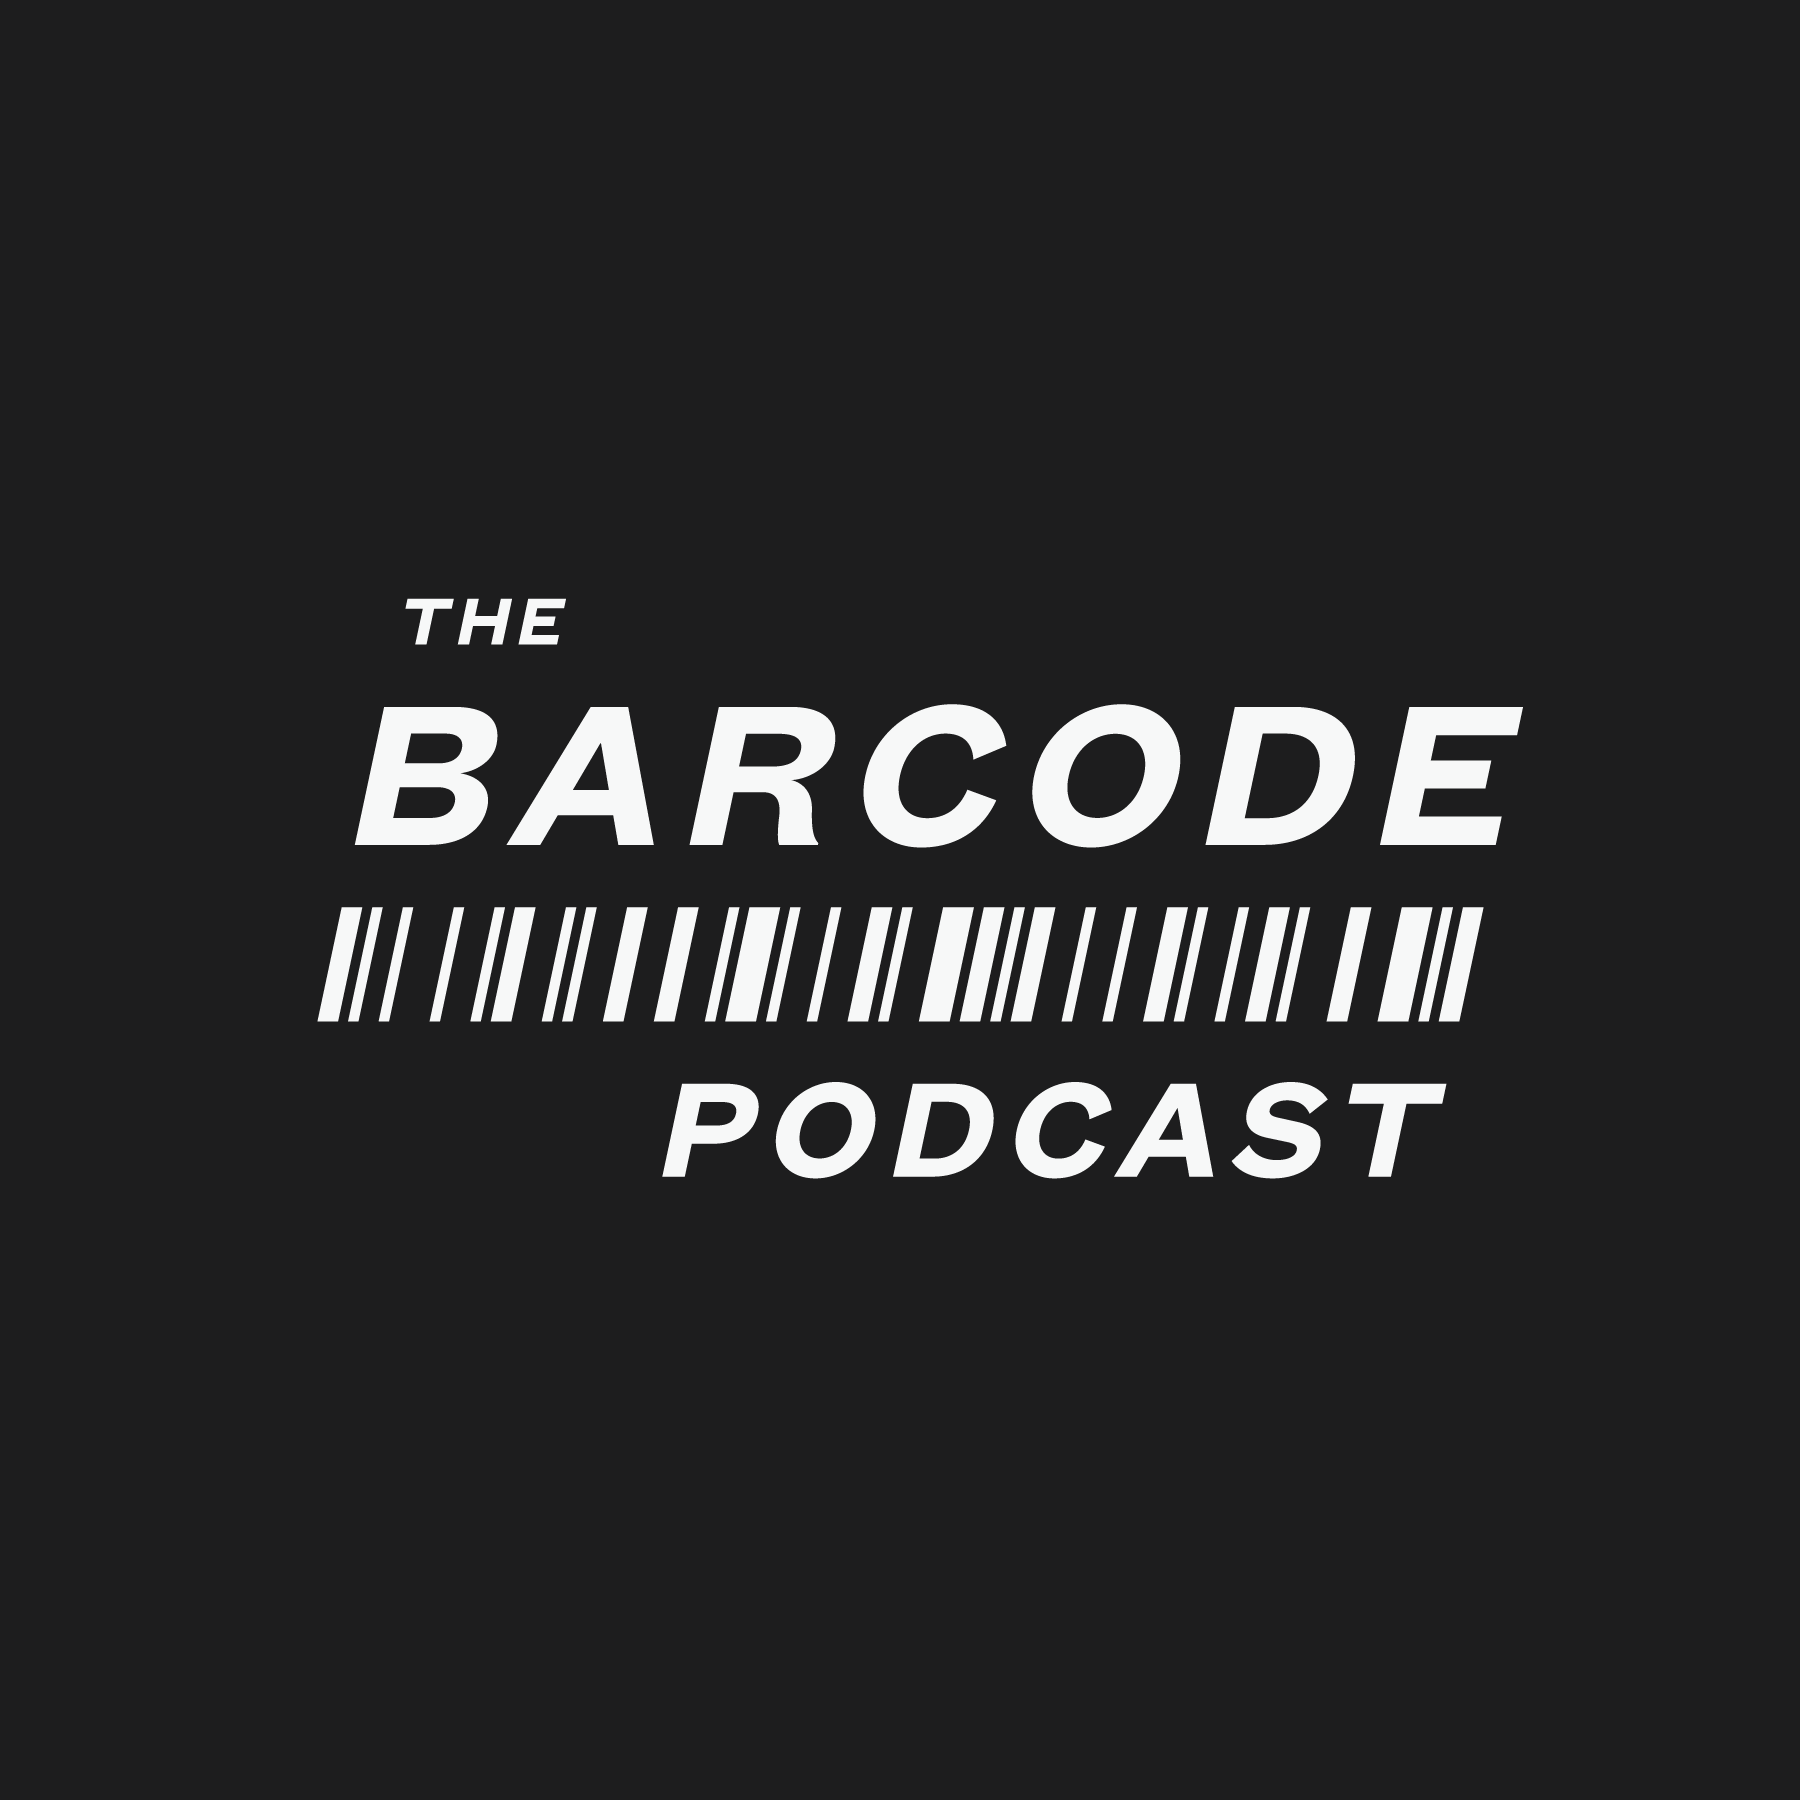 The Barcode Podcast show art